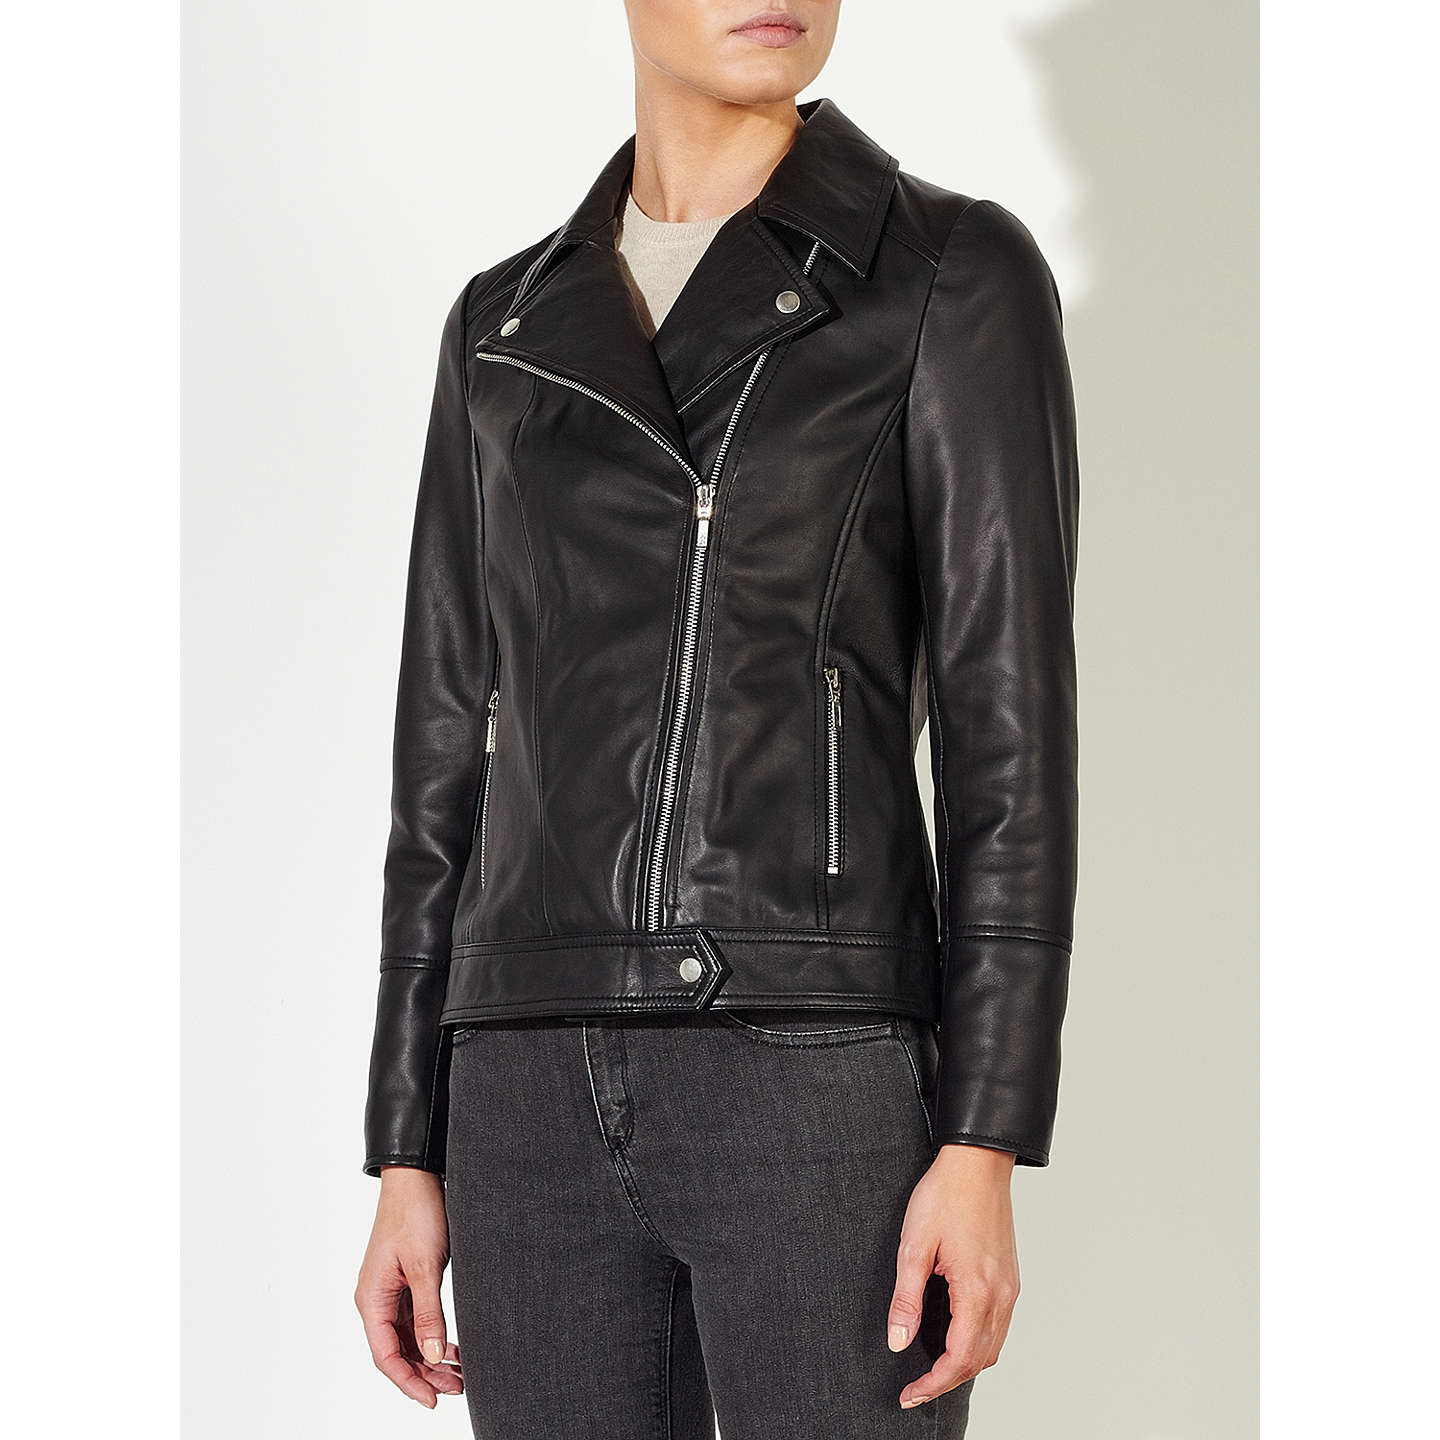 John lewis womens jackets